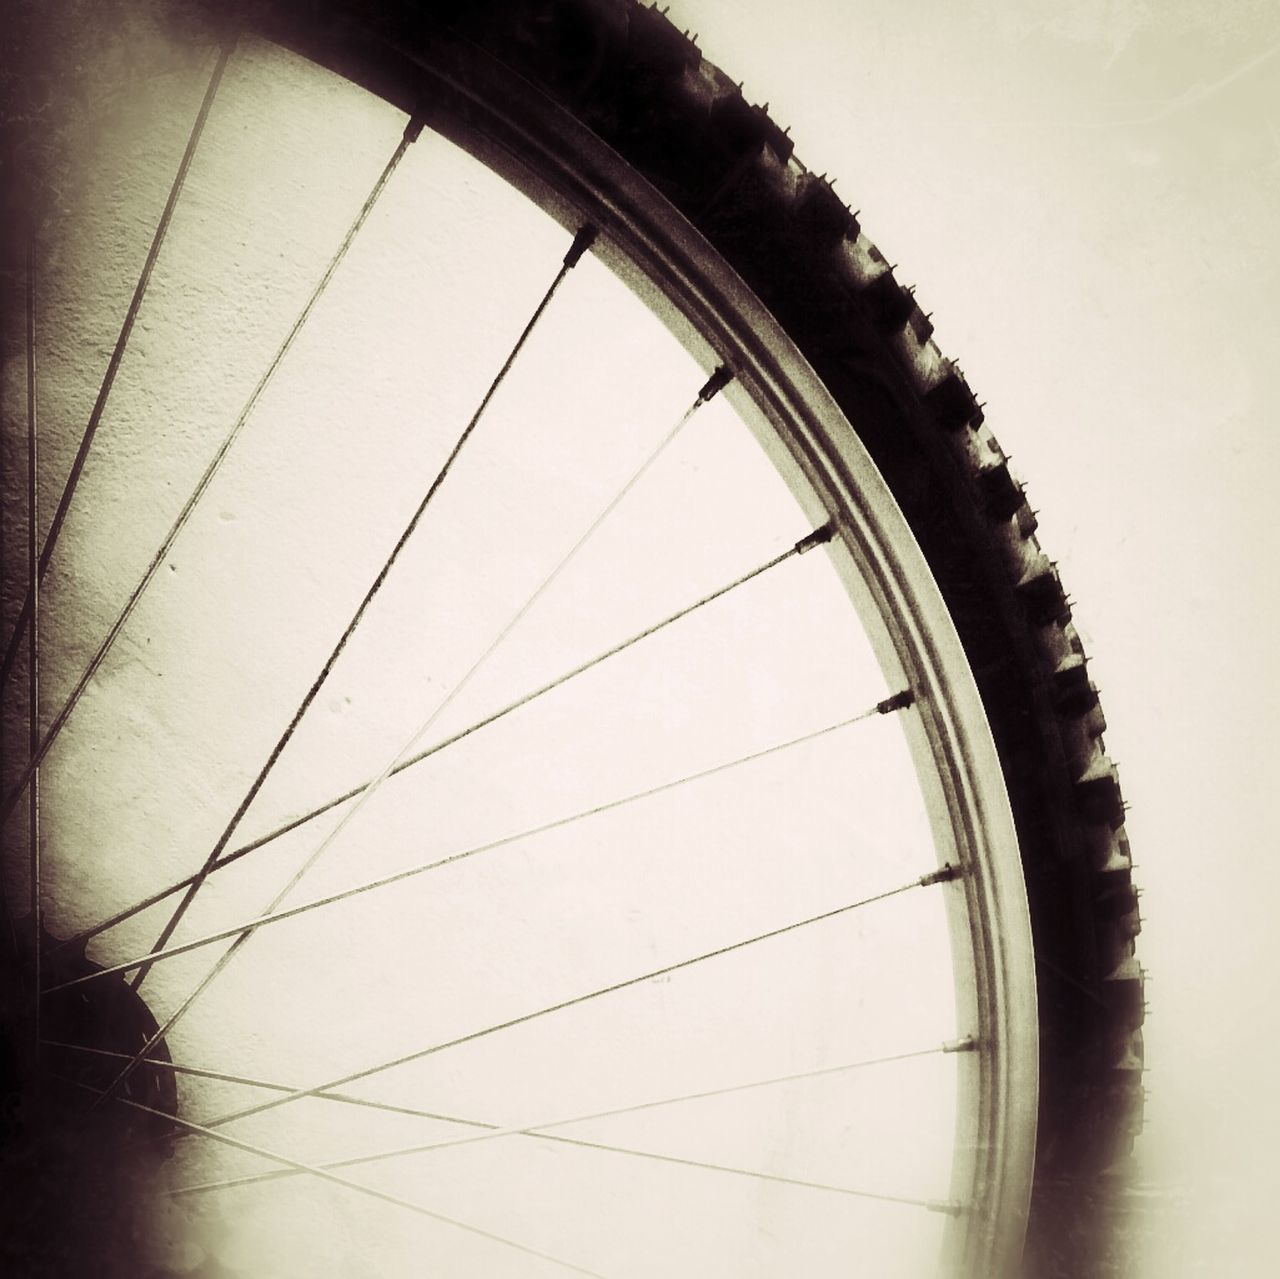 wheel, no people, day, tire, transportation, close-up, outdoors, white background